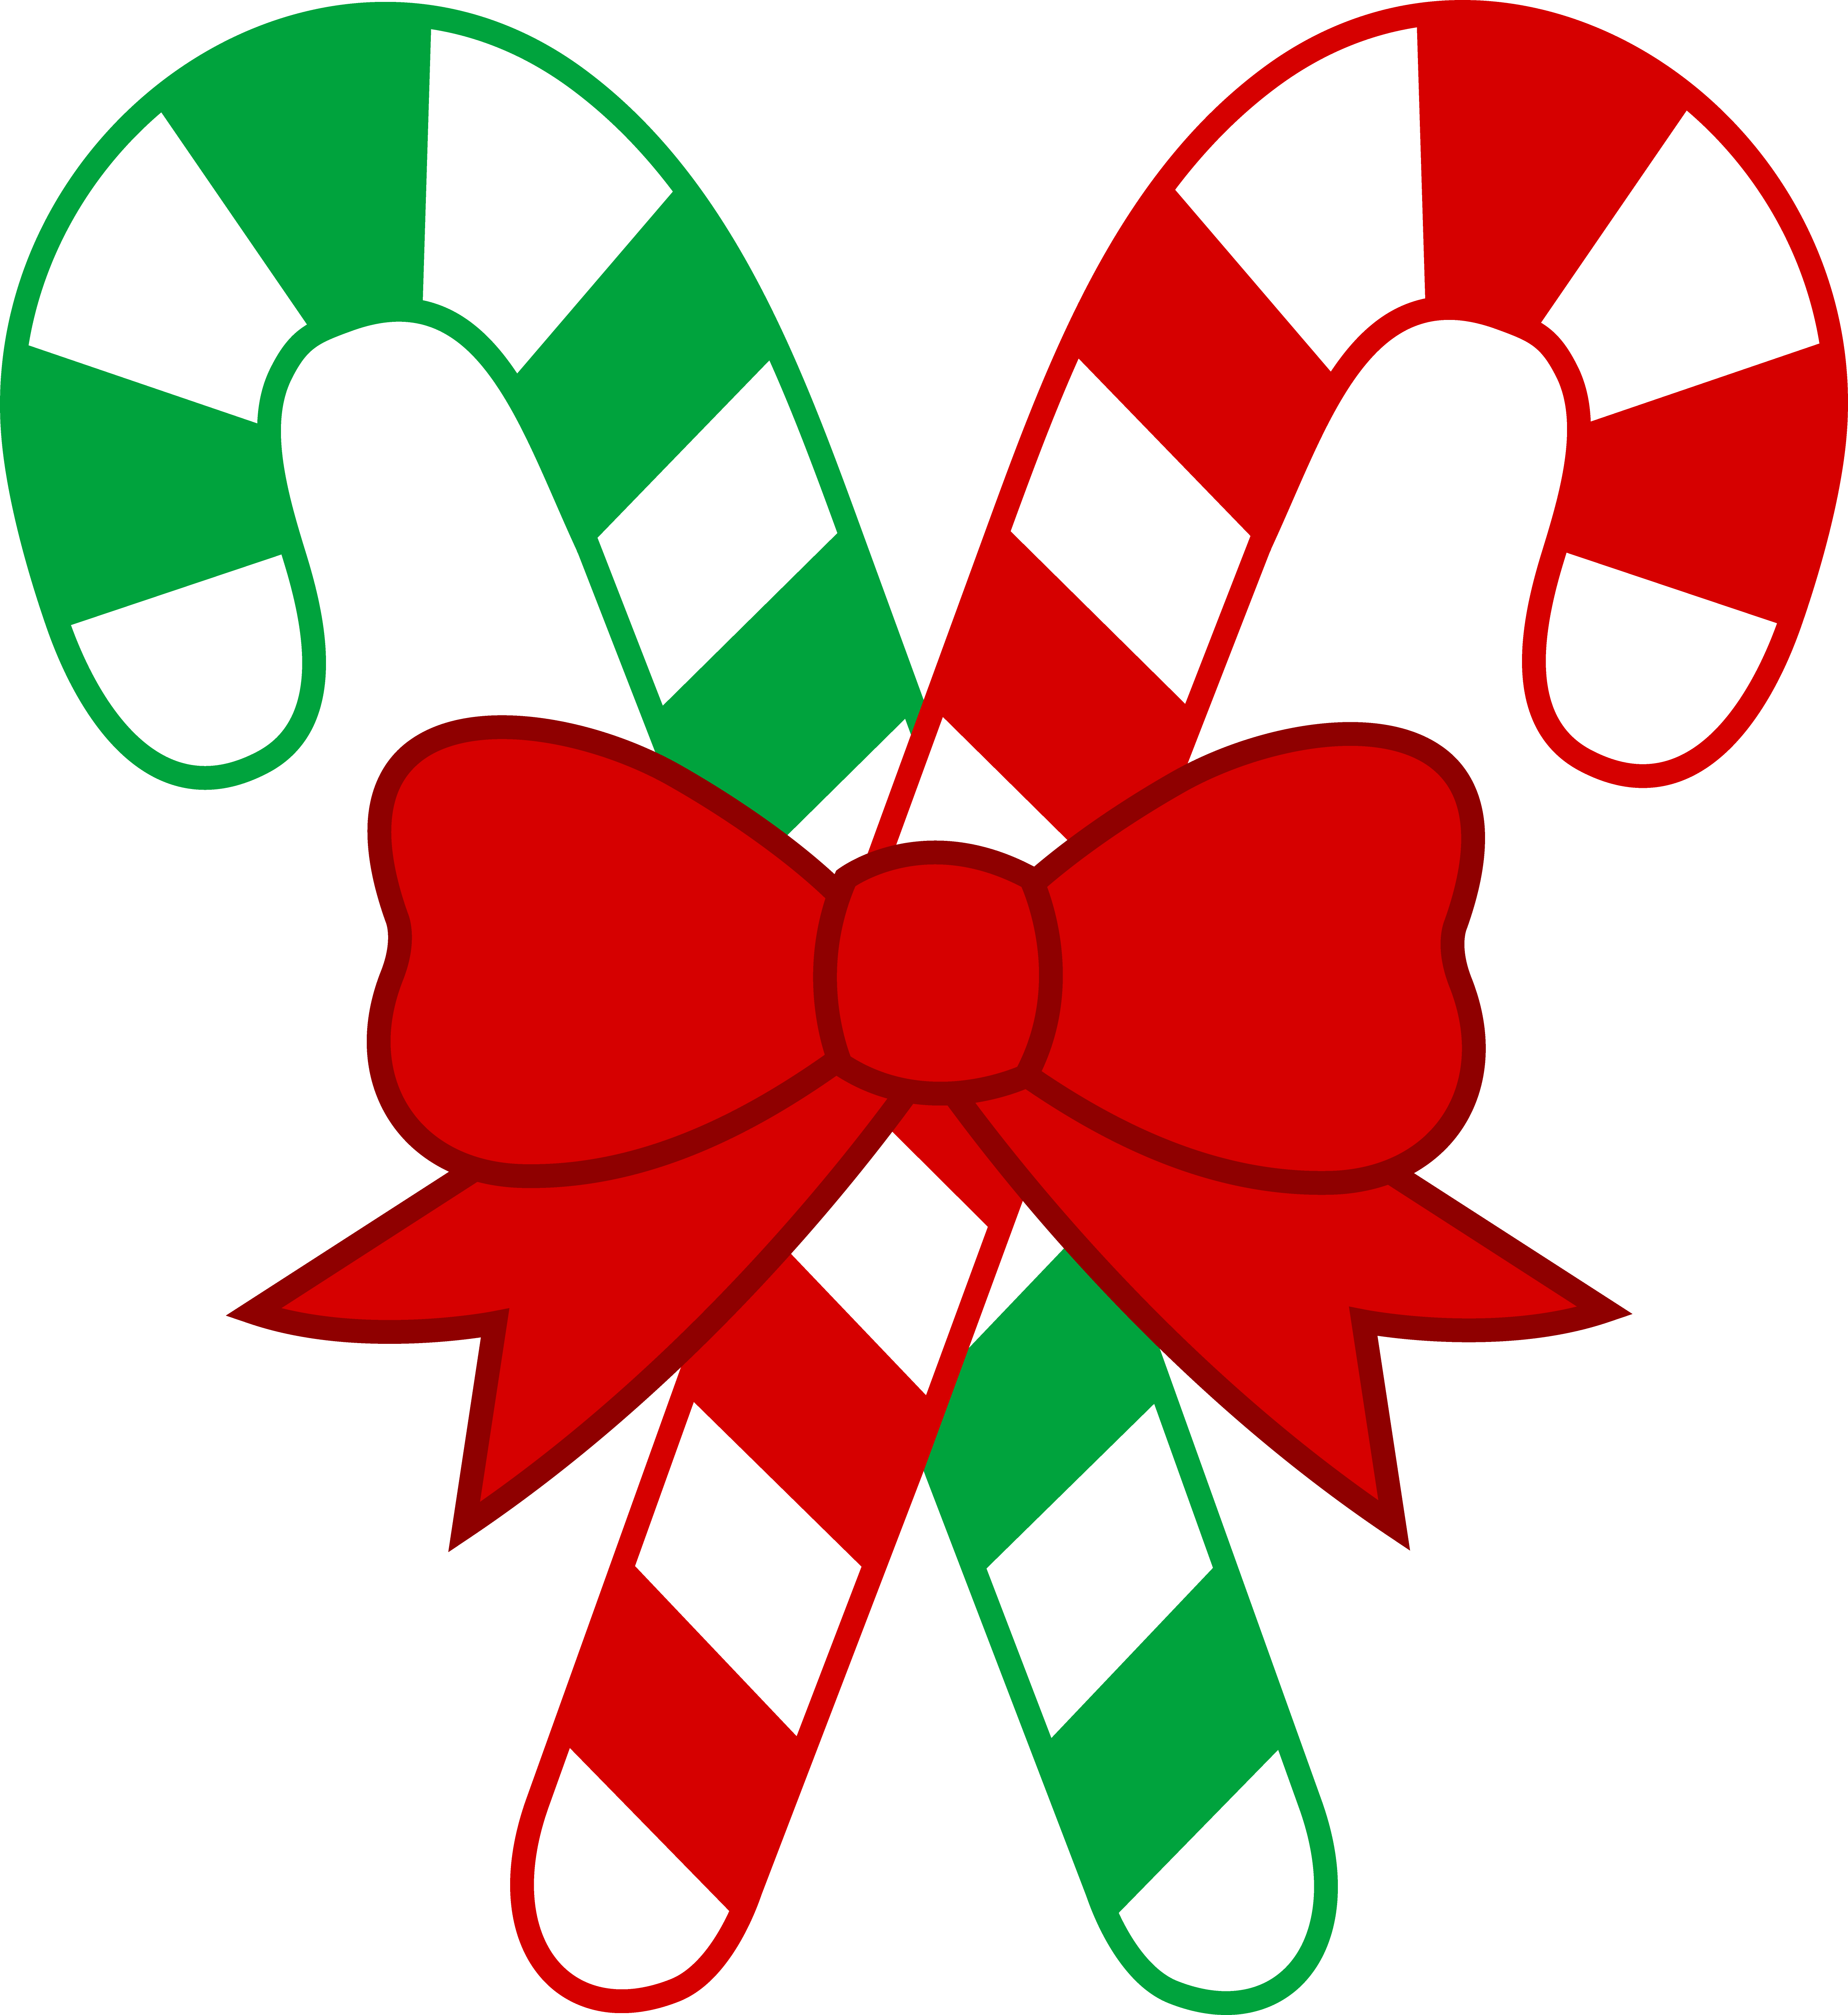 Download image as clipart